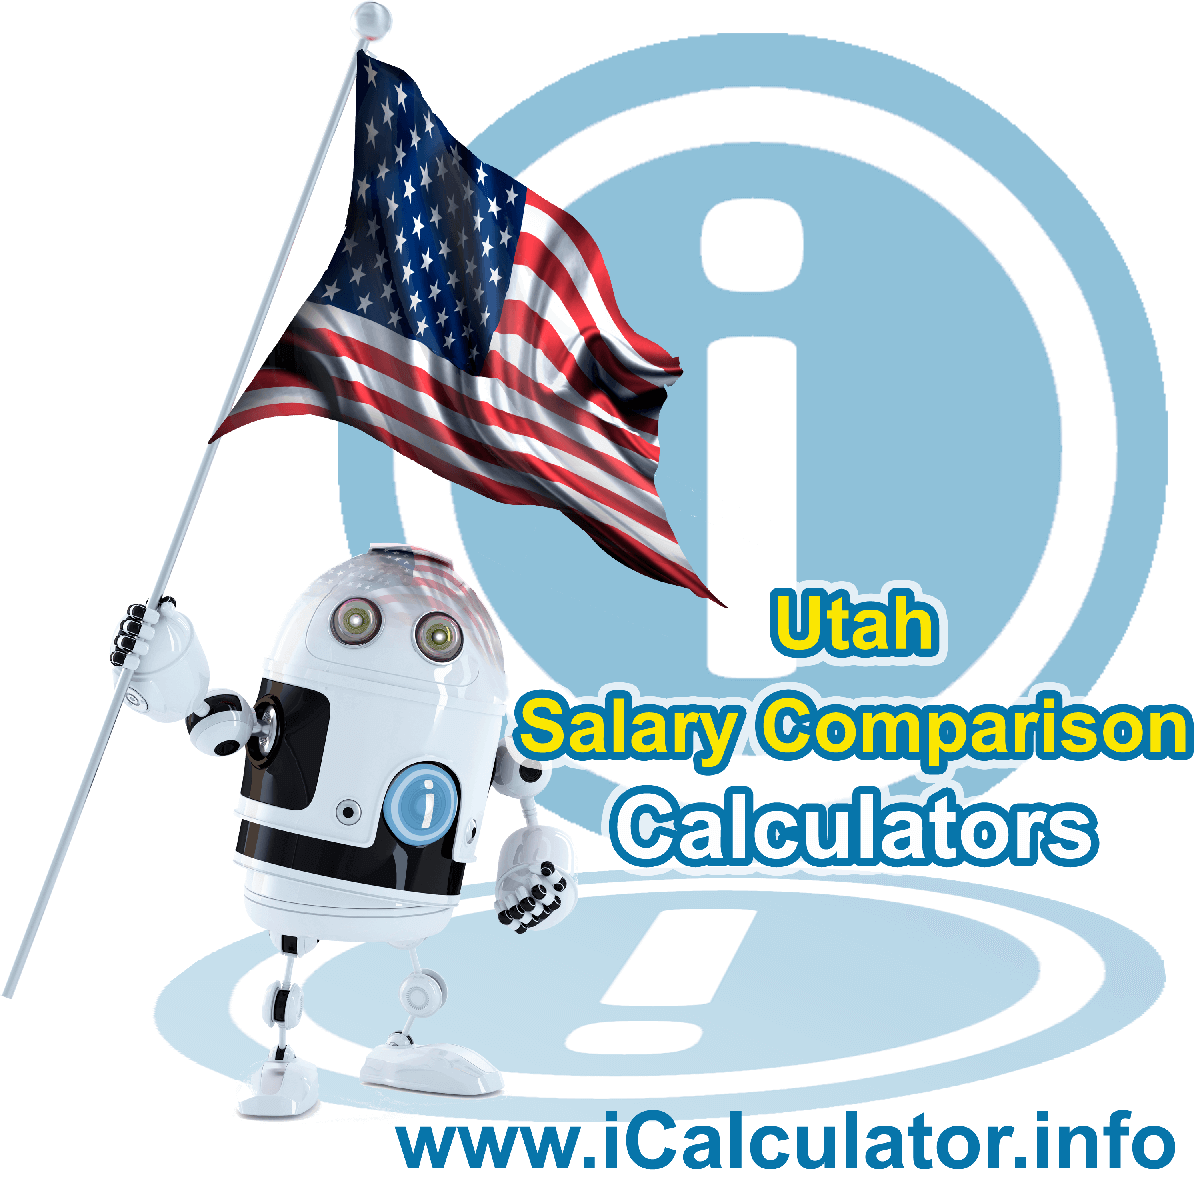 Utah Salary Comparison Calculator 2019 | iCalculator | The Utah Salary Comparison Calculator allows you to quickly calculate and compare upto 6 salaries in Utah or between other states for the 2019 tax year and historical tax years. Its an excellent tool for jobseekers, pay raise comparison and comparison of salaries between different US States